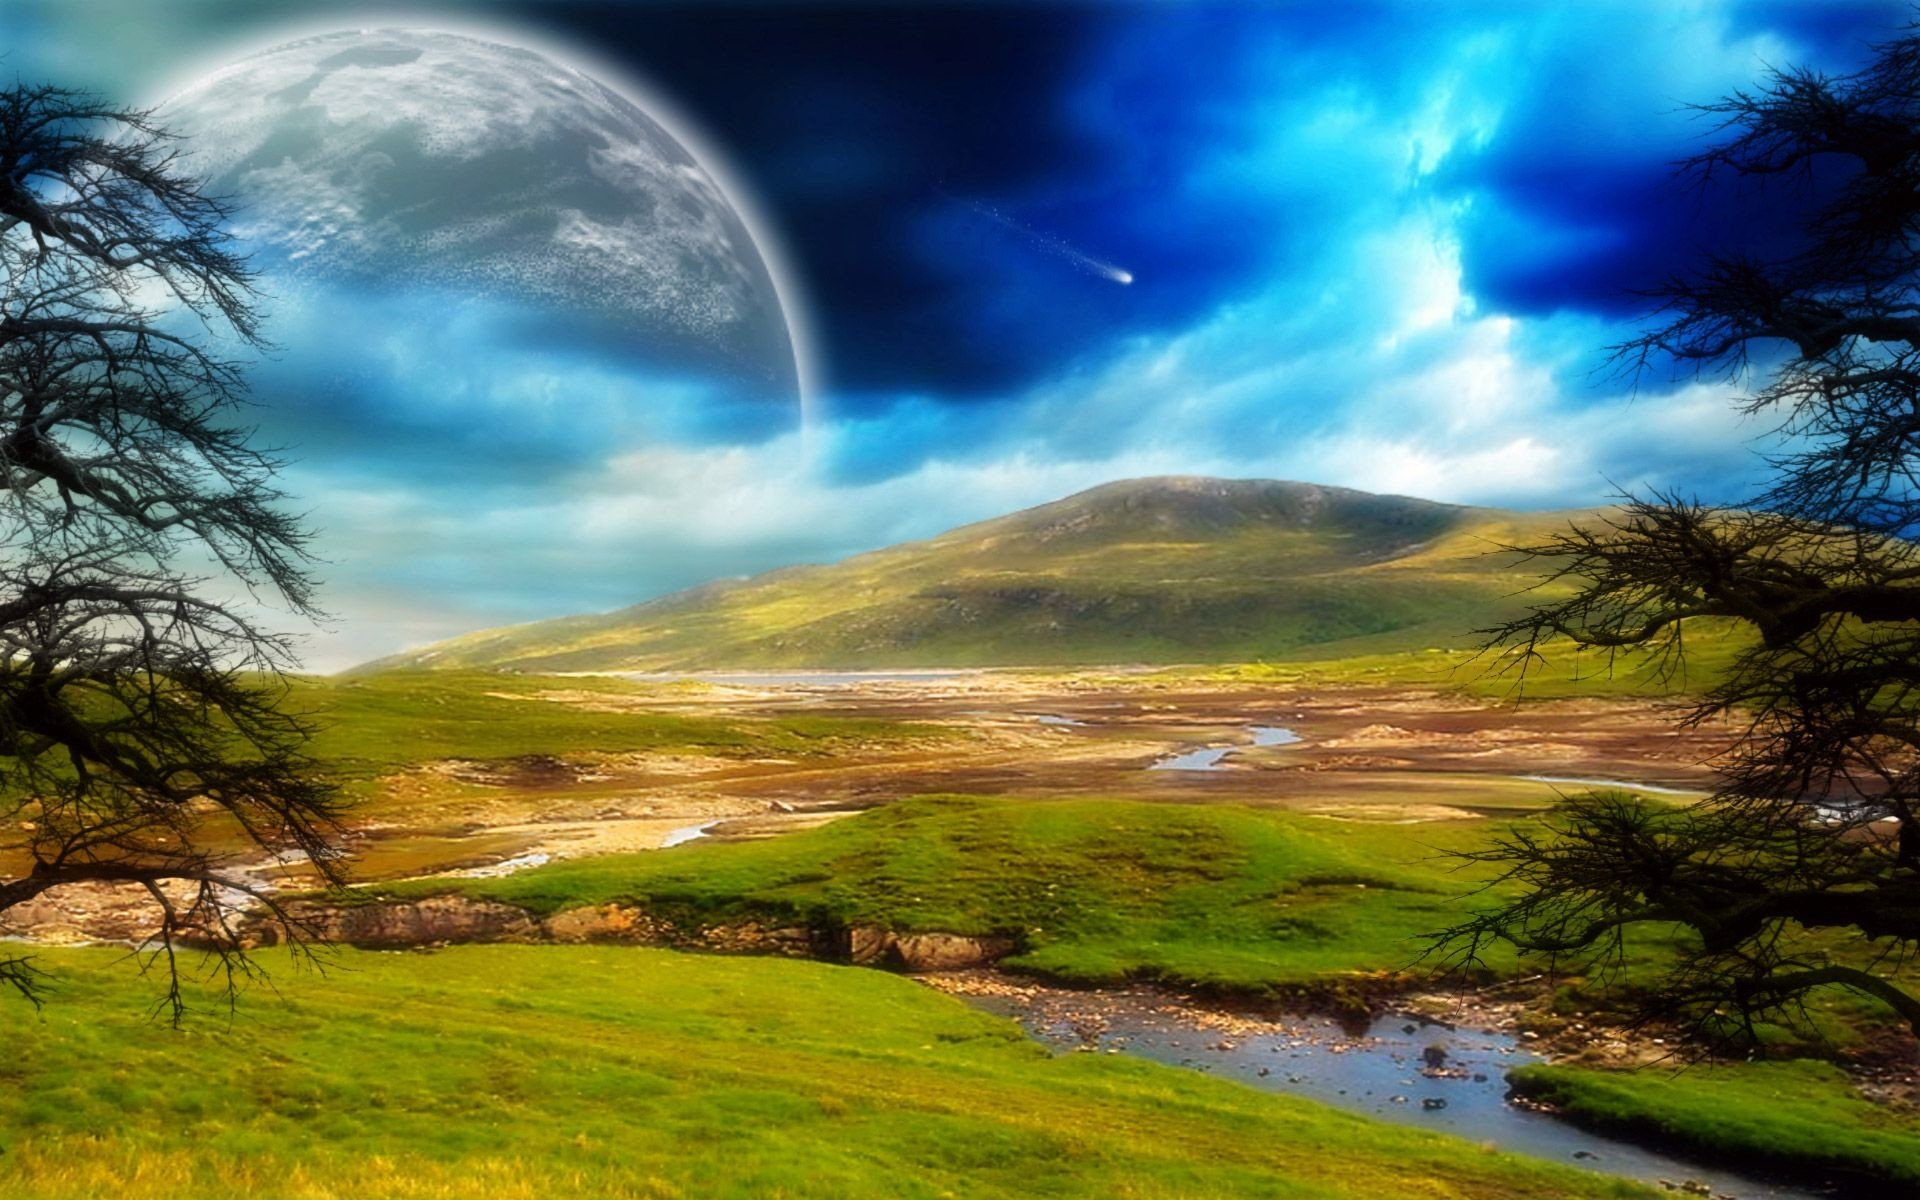 Fantasy Nature Wallpapers (74+ Images